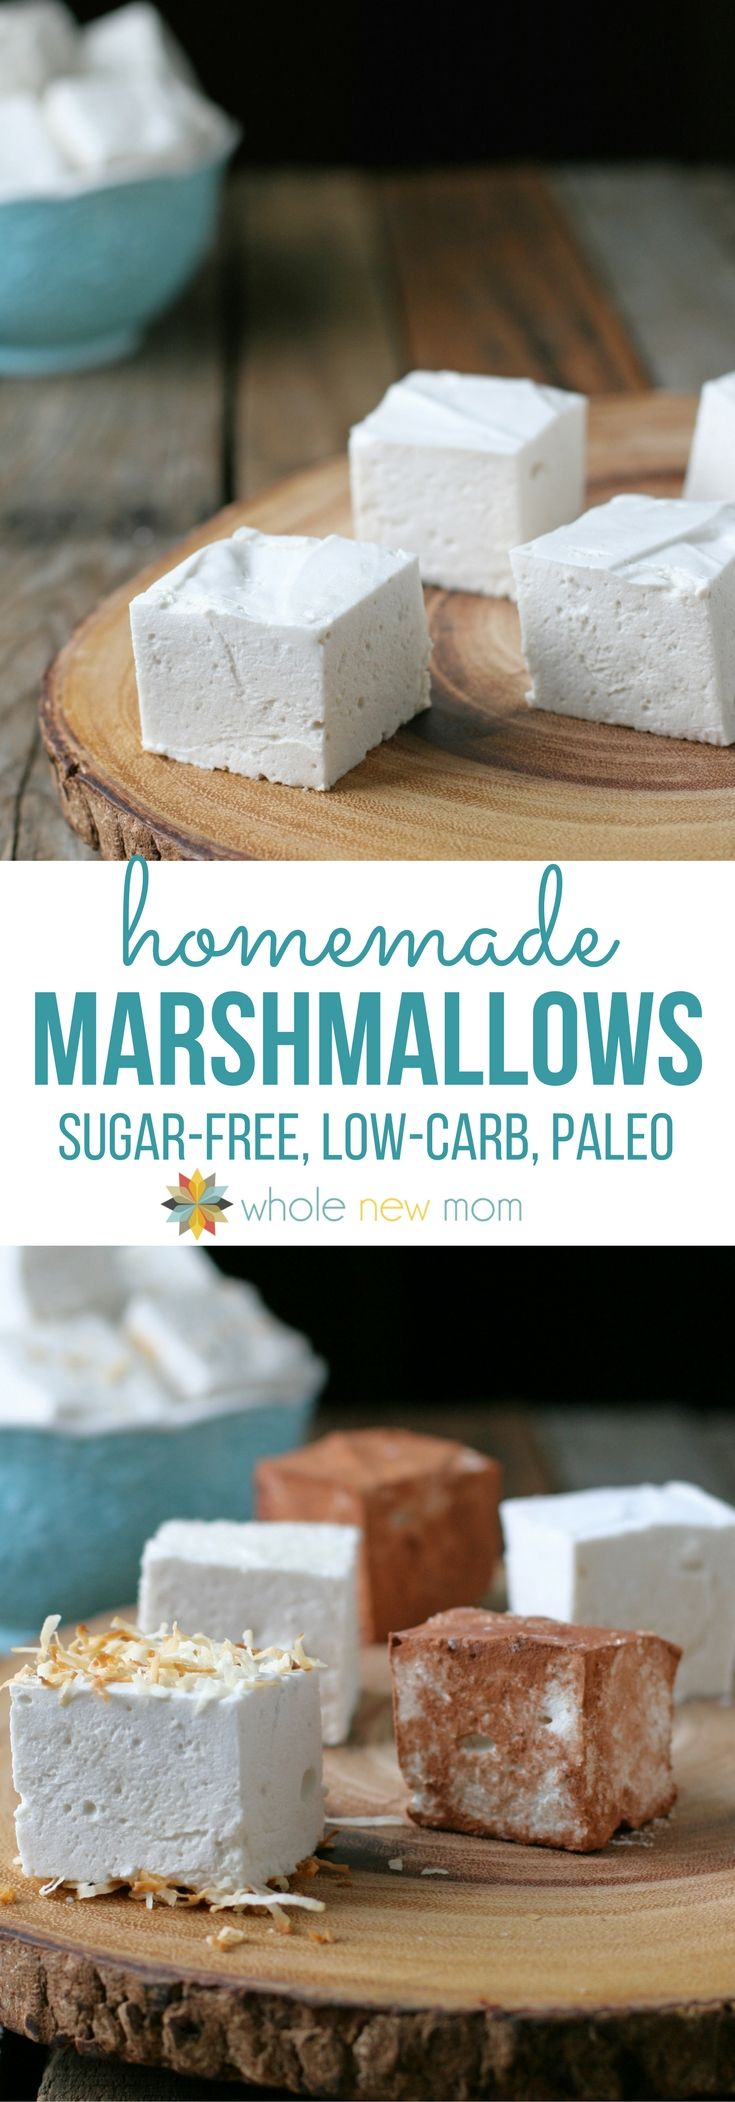 Homemade Marshmallows? Yes, please! Fun to make -- Sugar-free and low carb to boot!